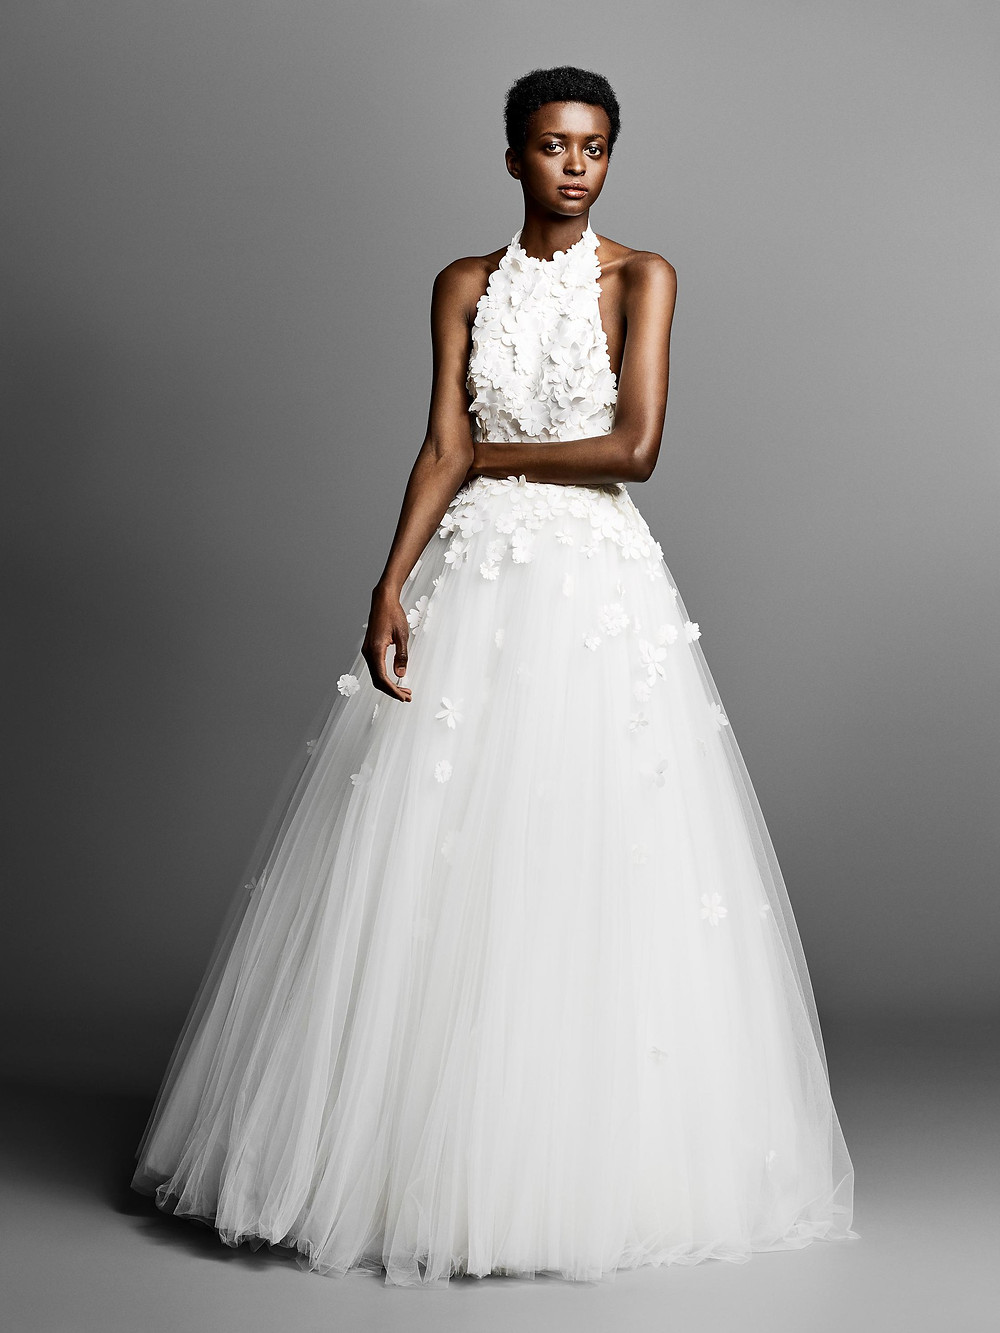 A Viktor & Rolf halterneck tulle ball gown wedding dress